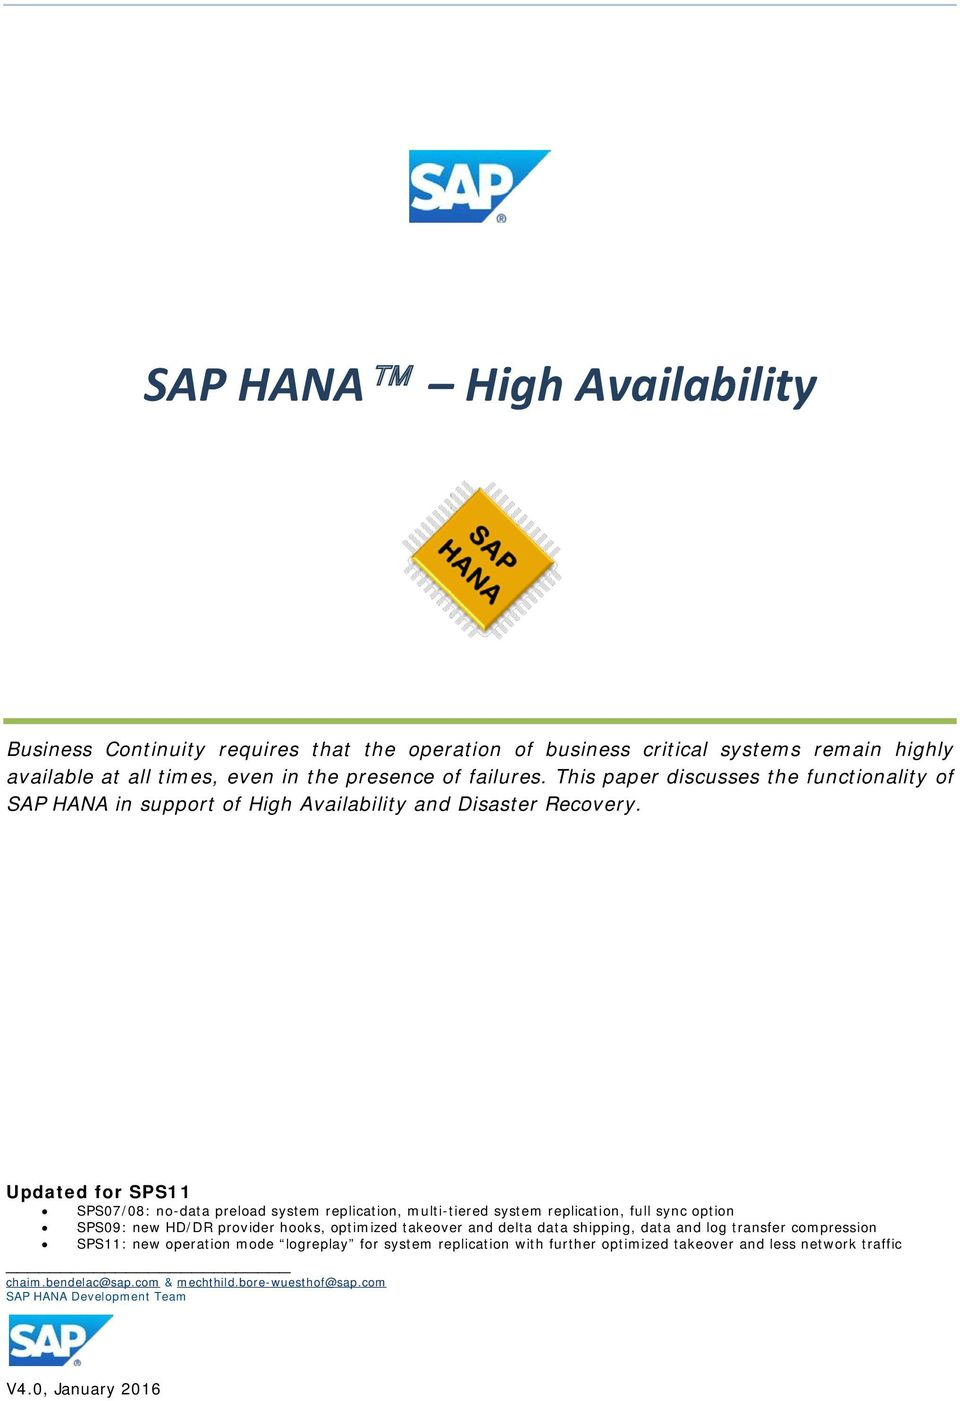 SAP HANA High Availability - PDF